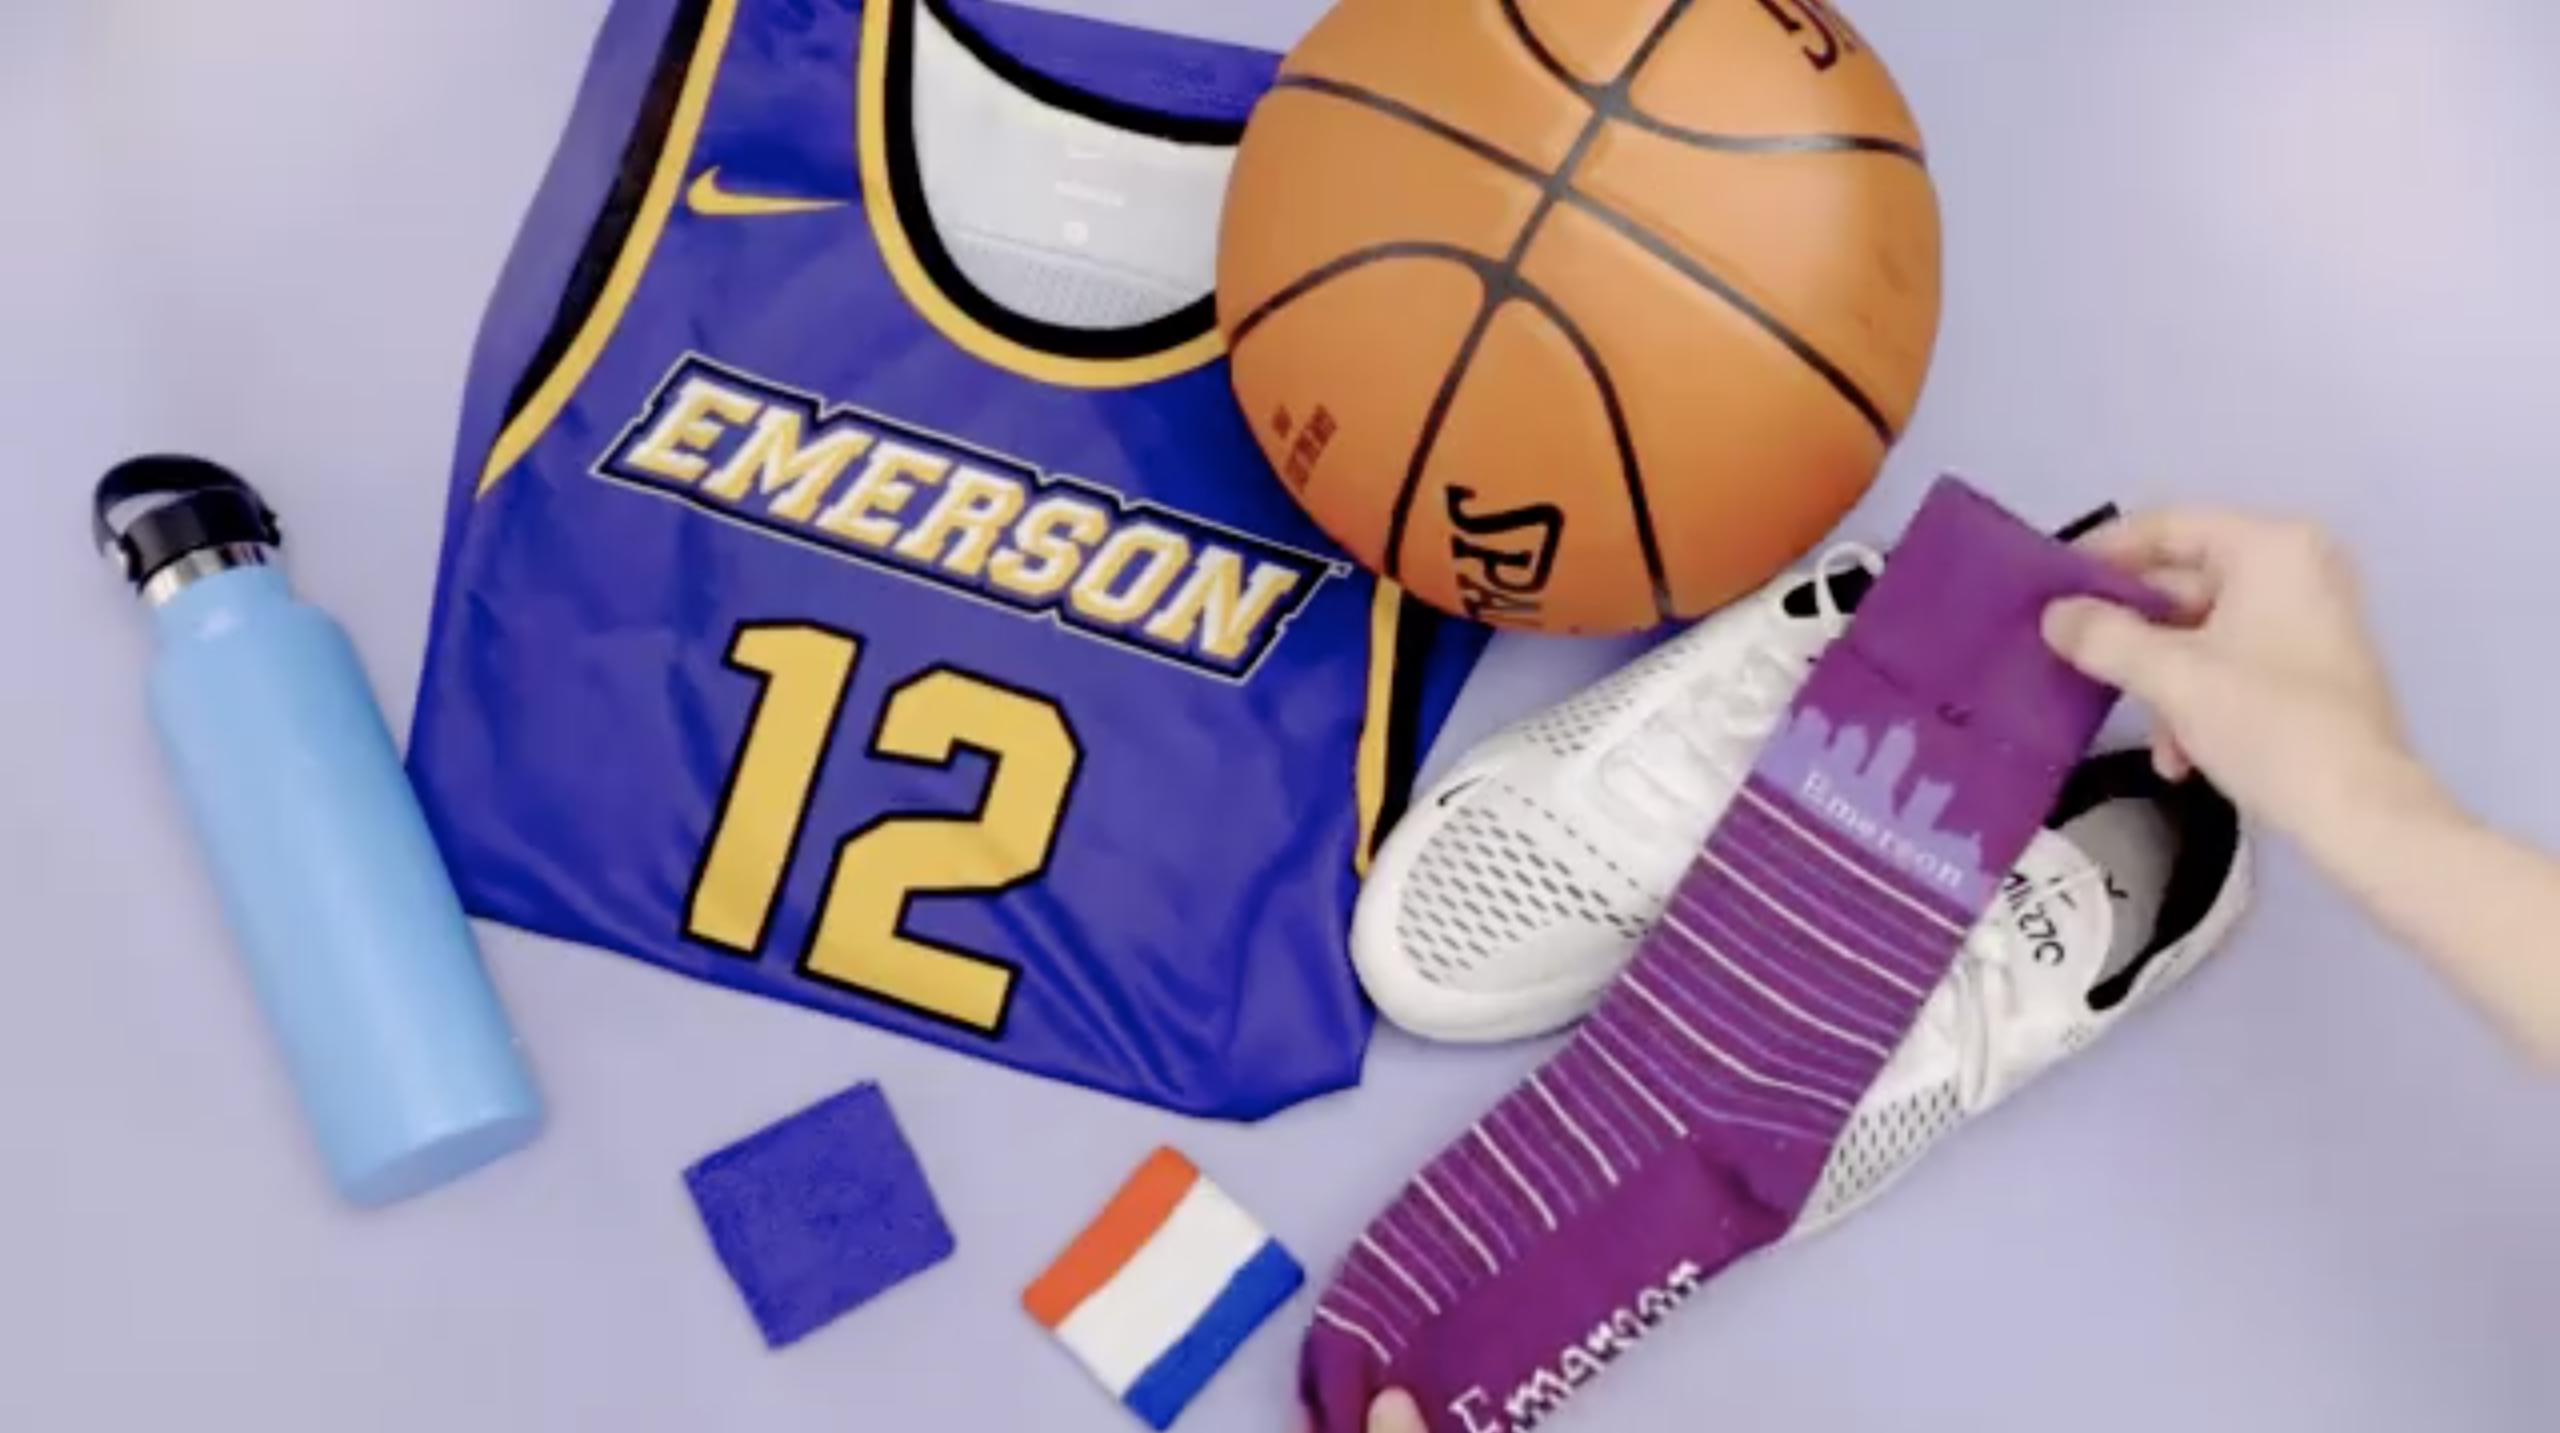 Donations from Tight Knit go to benefit student organizations. Screenshot from Emerson College Alumni Association Facebook Video.